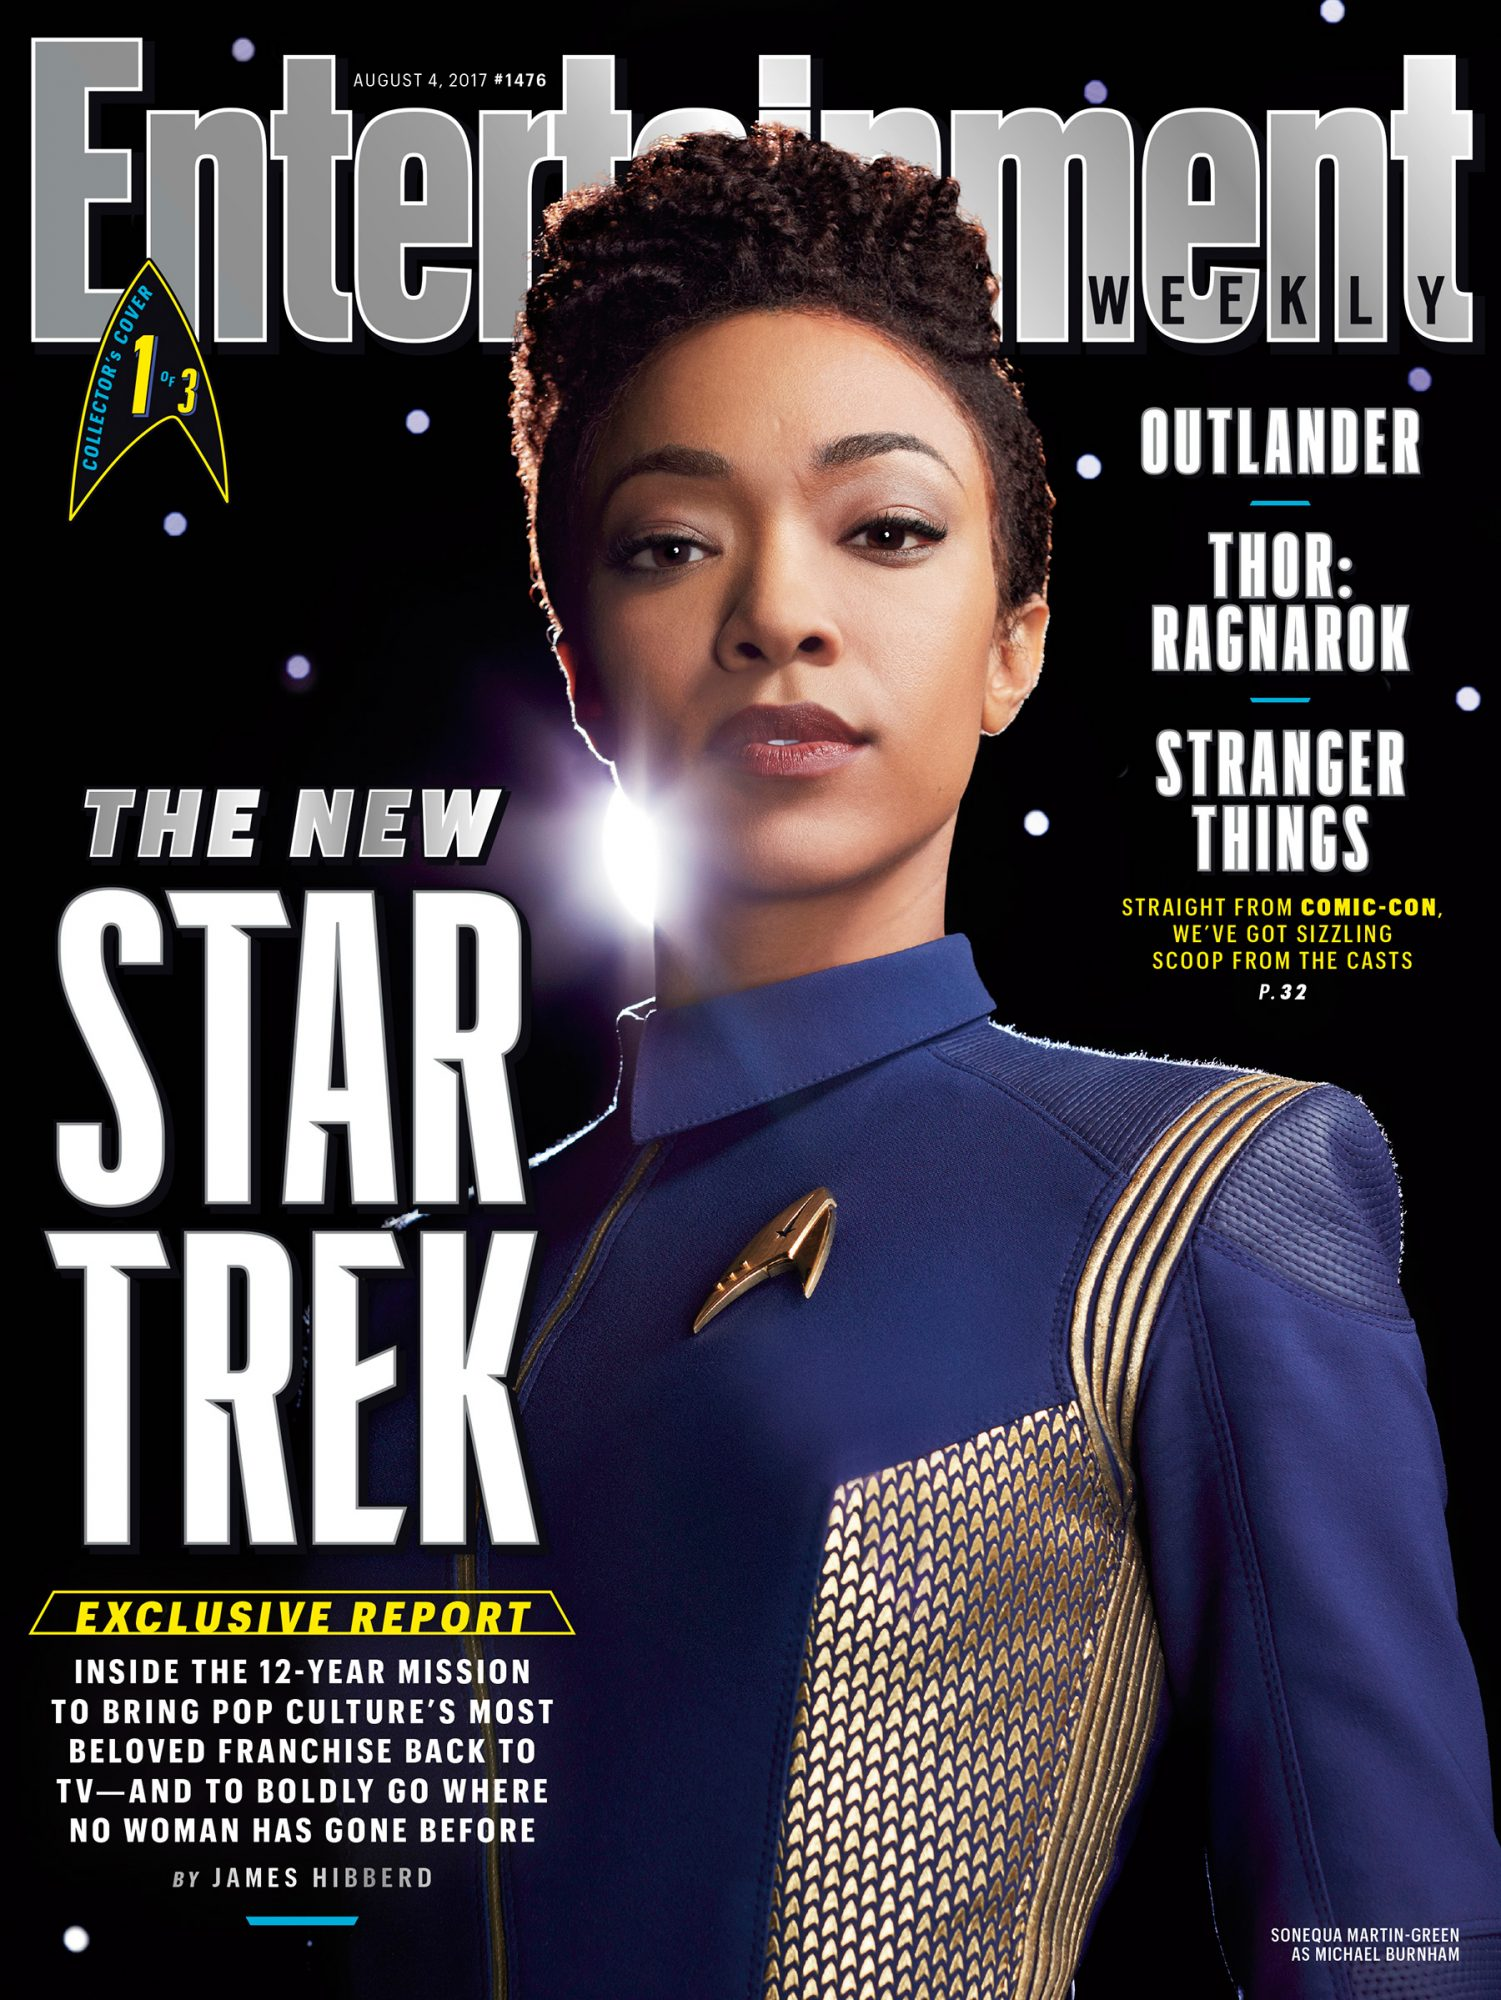 Sonequa Martin-Green as First Officer Michael Burnham in Star Trek: Discovery